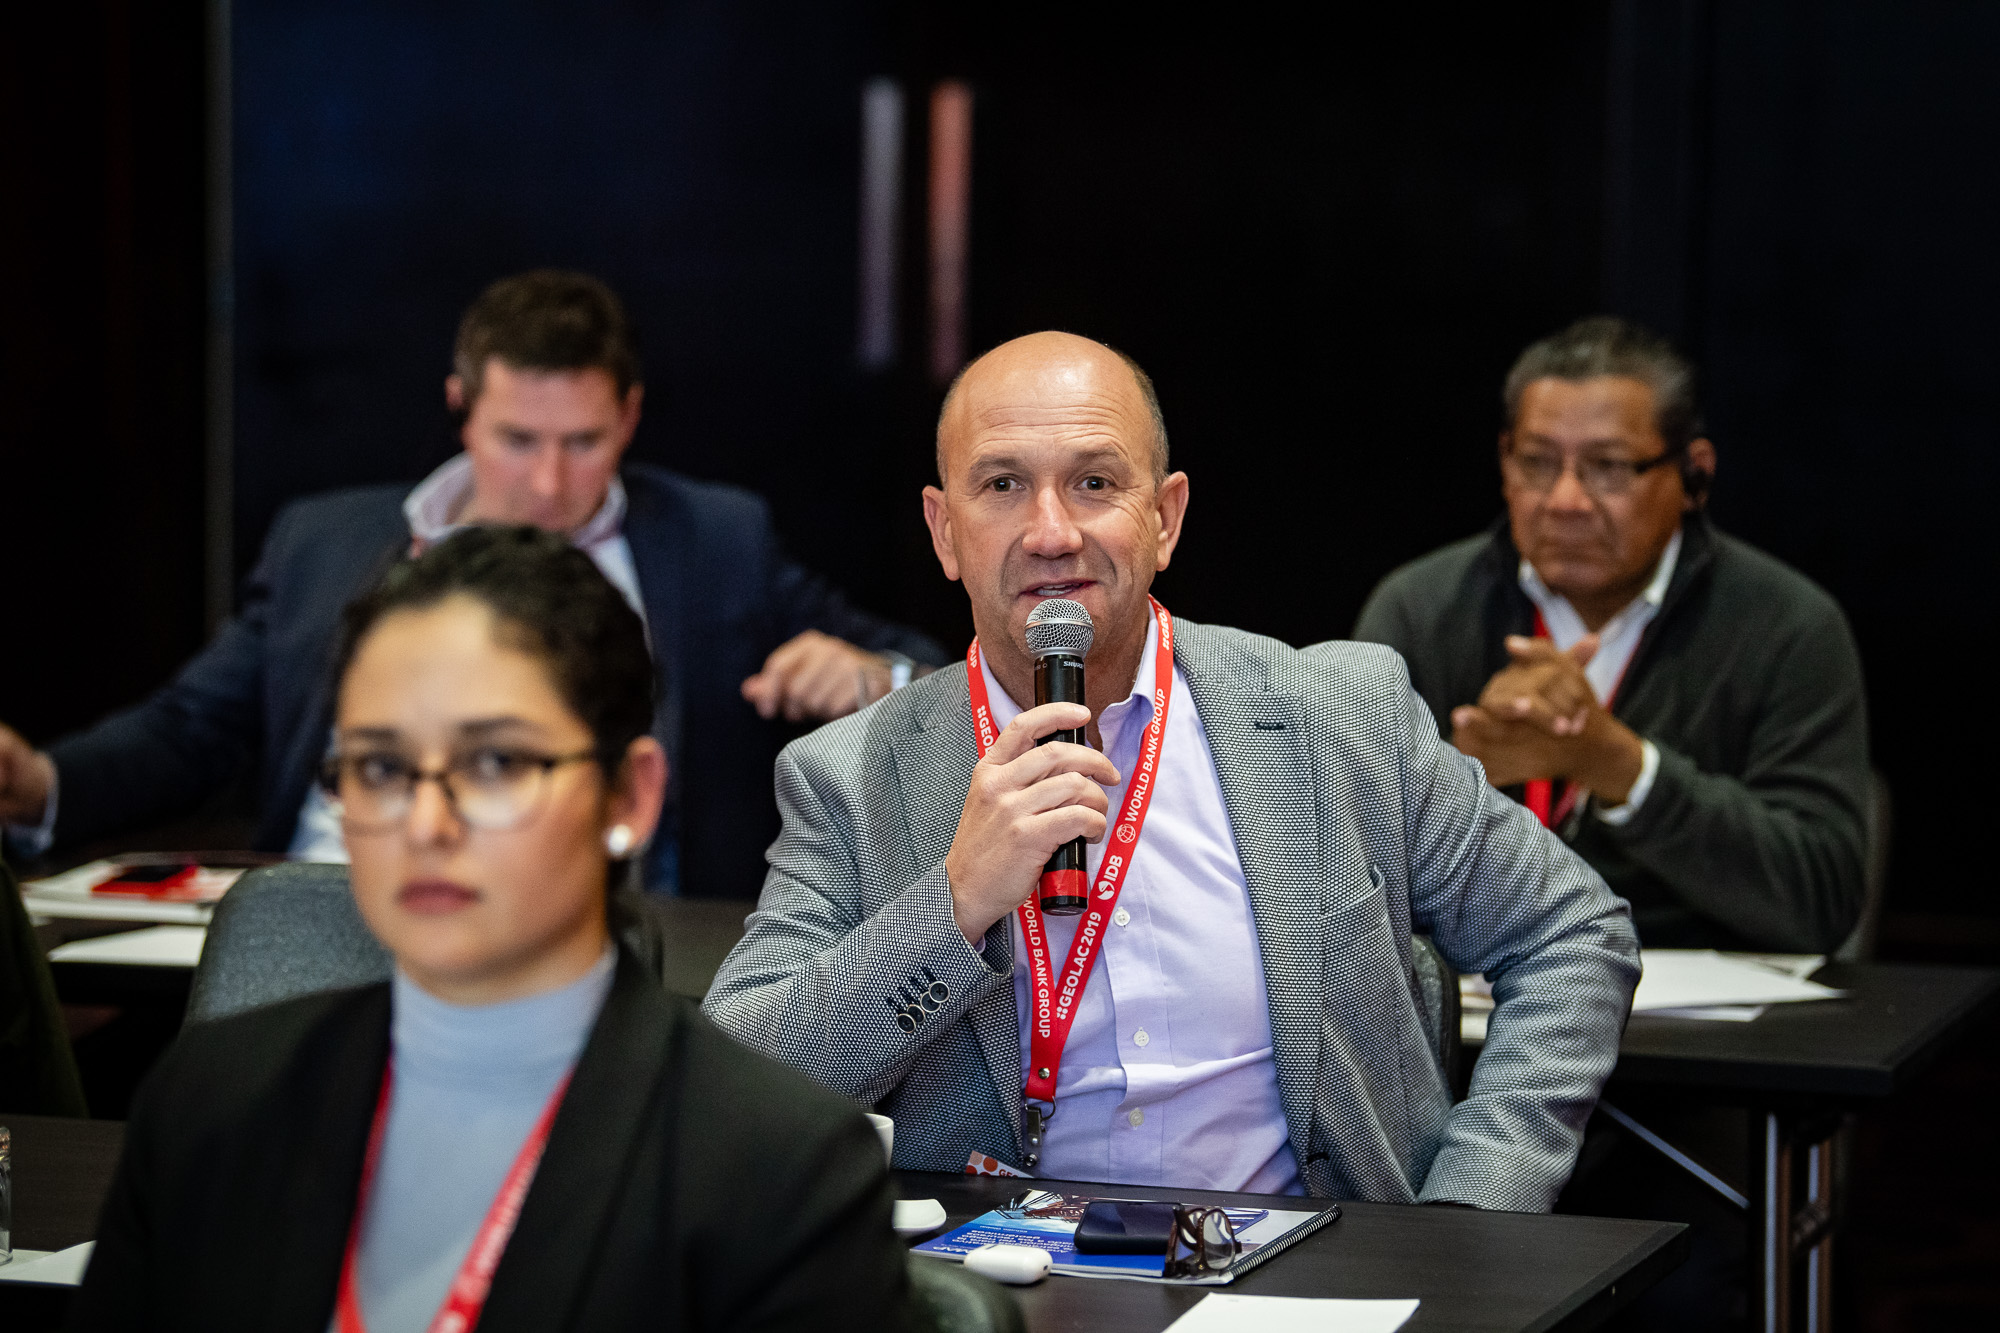 Attendee-asking-question-519-GEOLAC_SANTIAGO